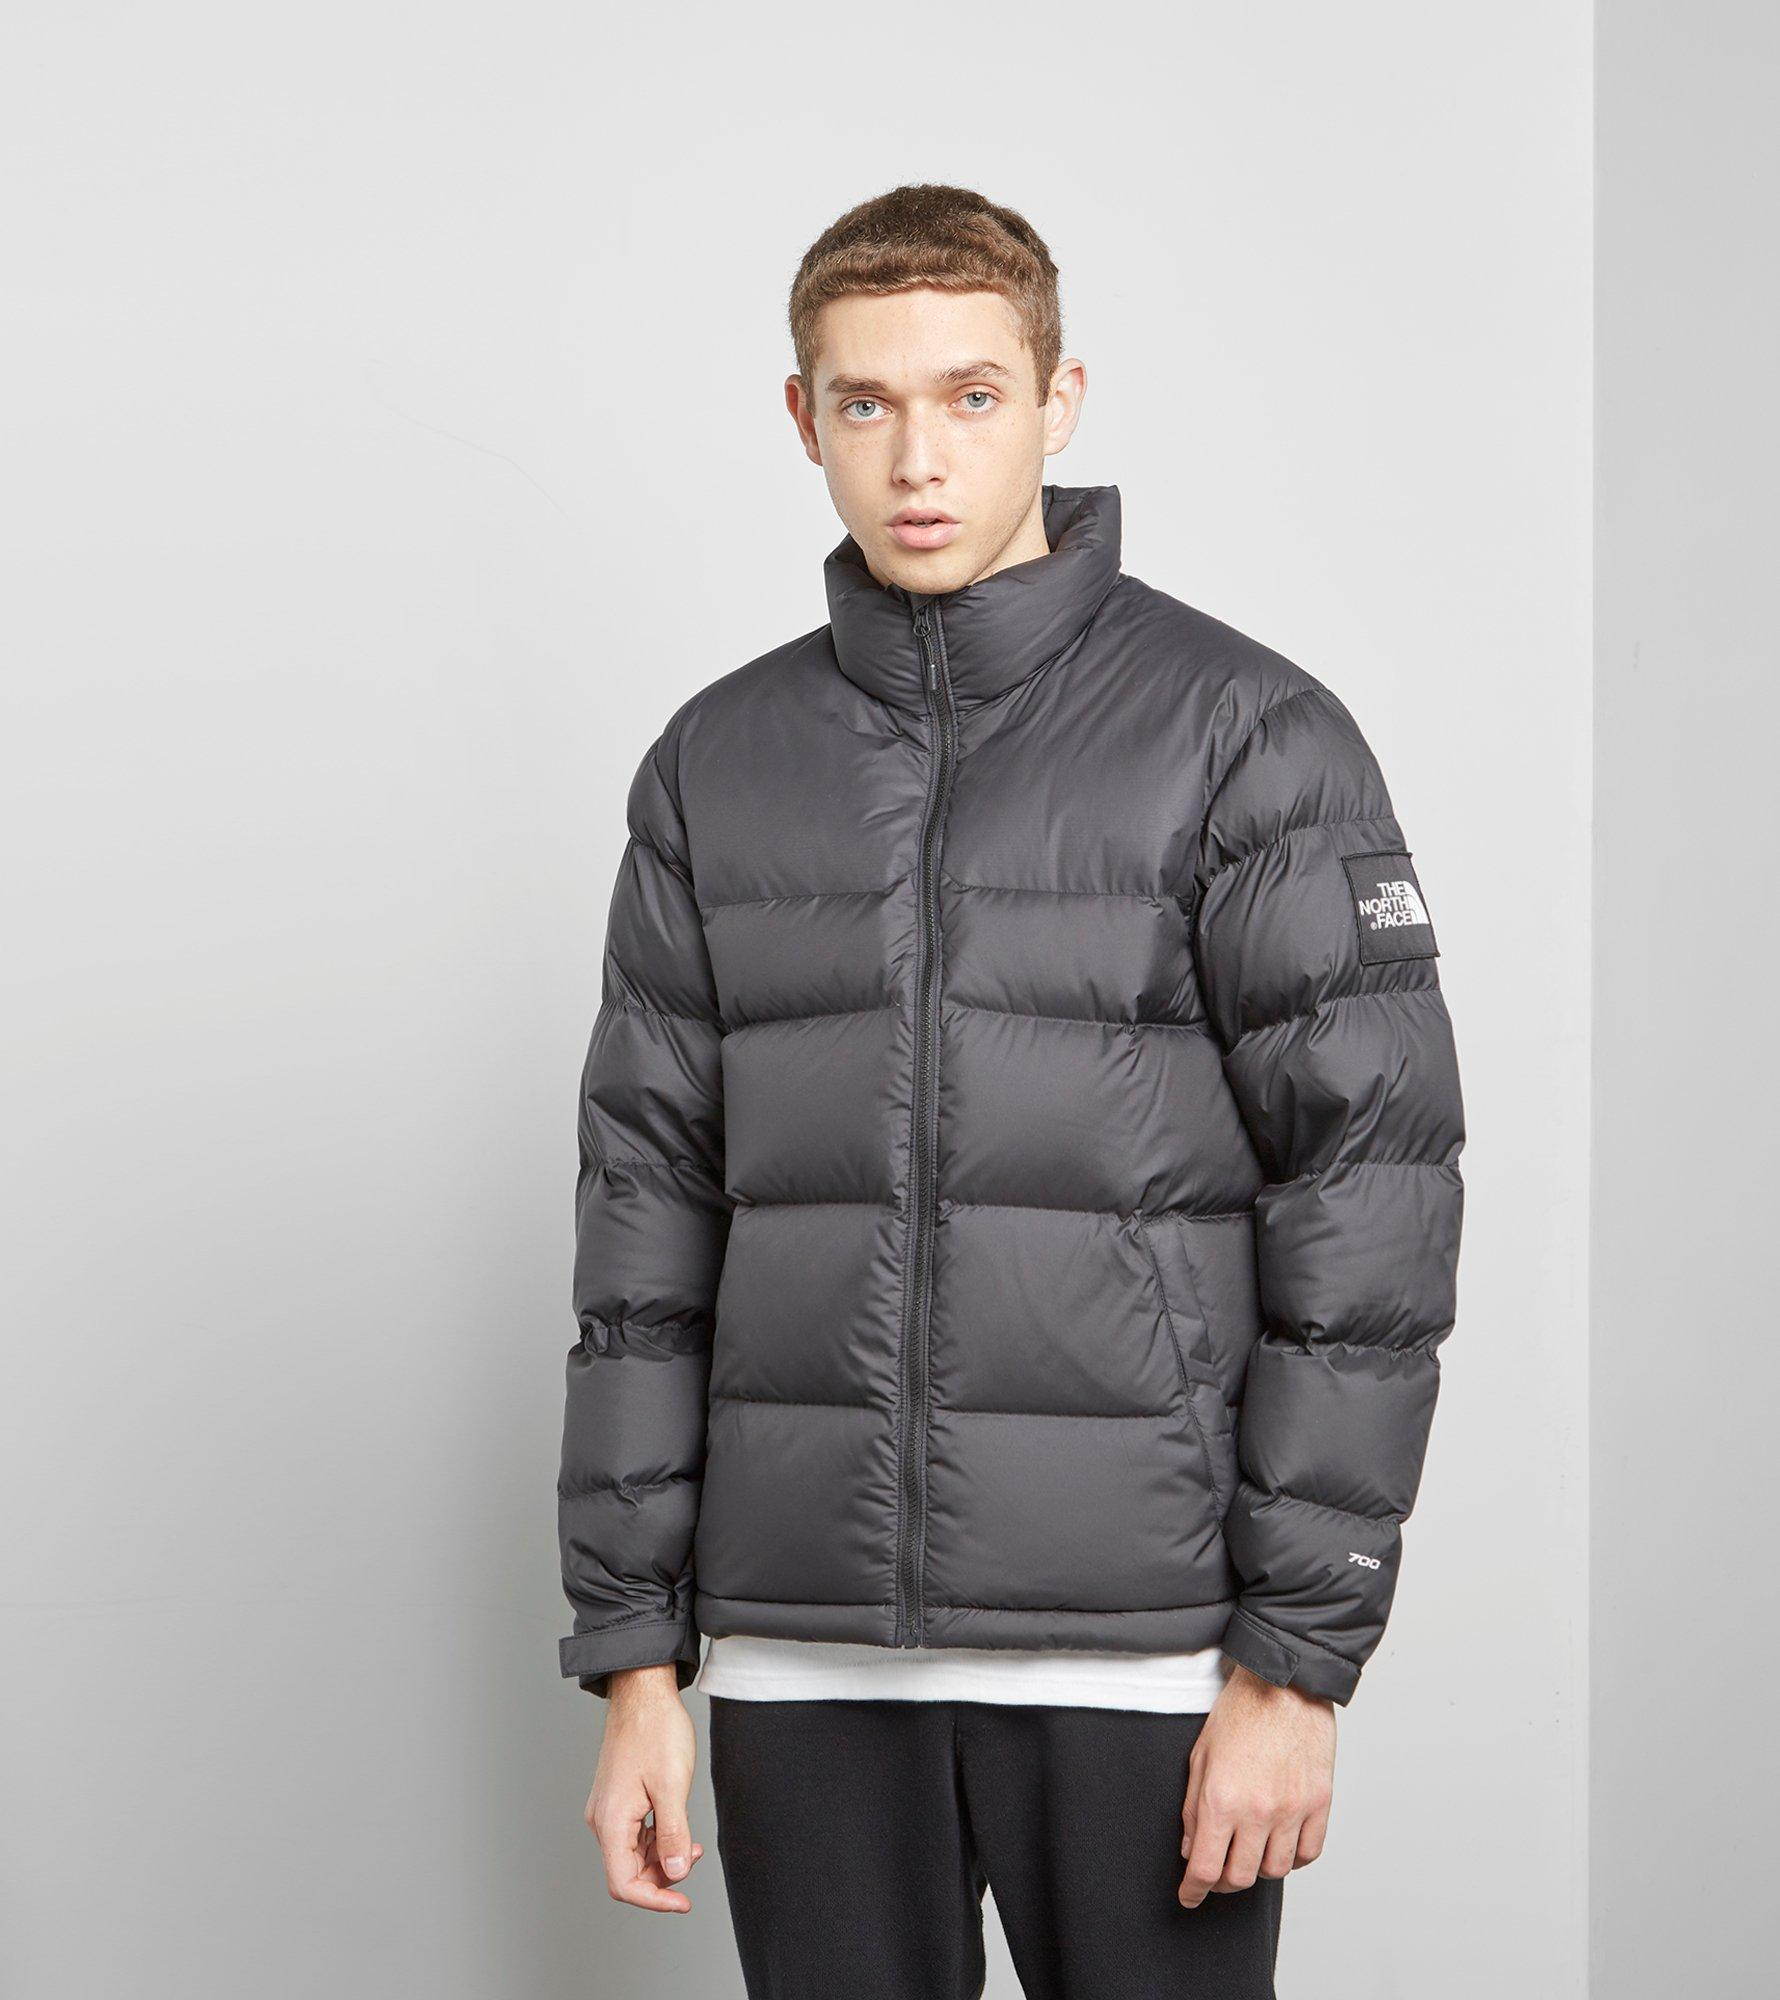 122180df03 Lyst - The North Face 1992 Nuptse Jacket in Black for Men